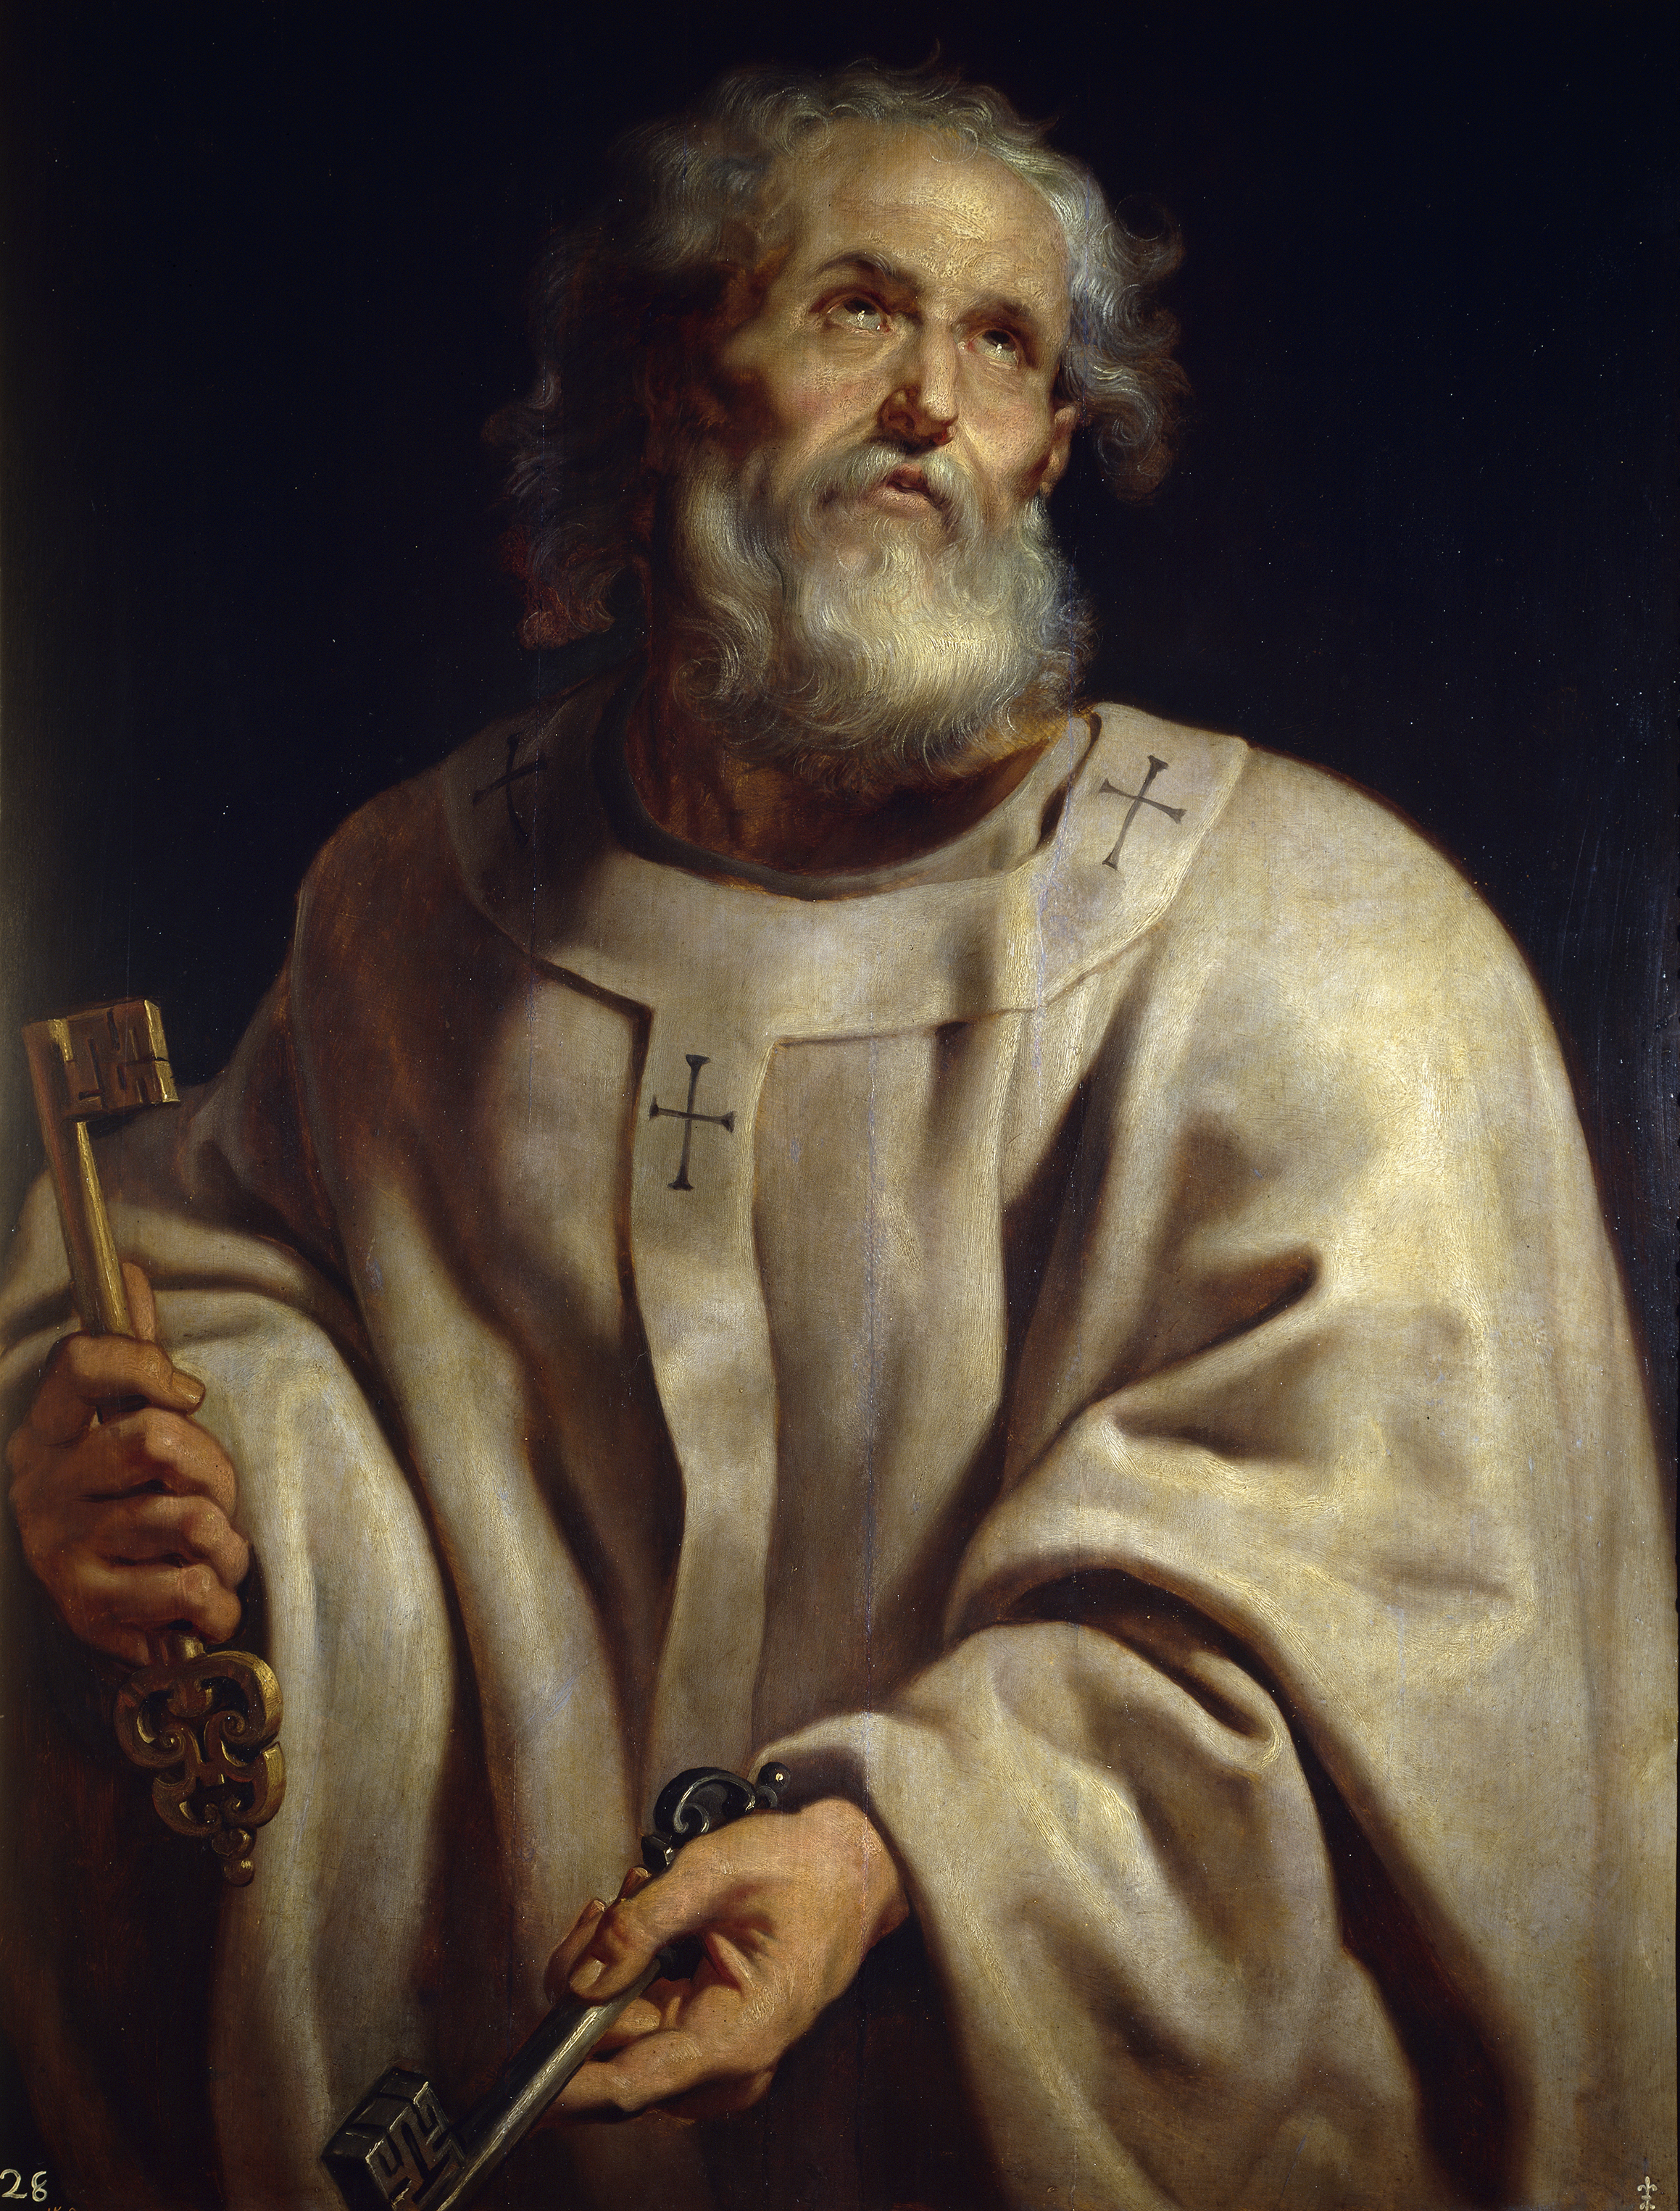 http://upload.wikimedia.org/wikipedia/commons/2/2d/Pope-peter_pprubens.jpg